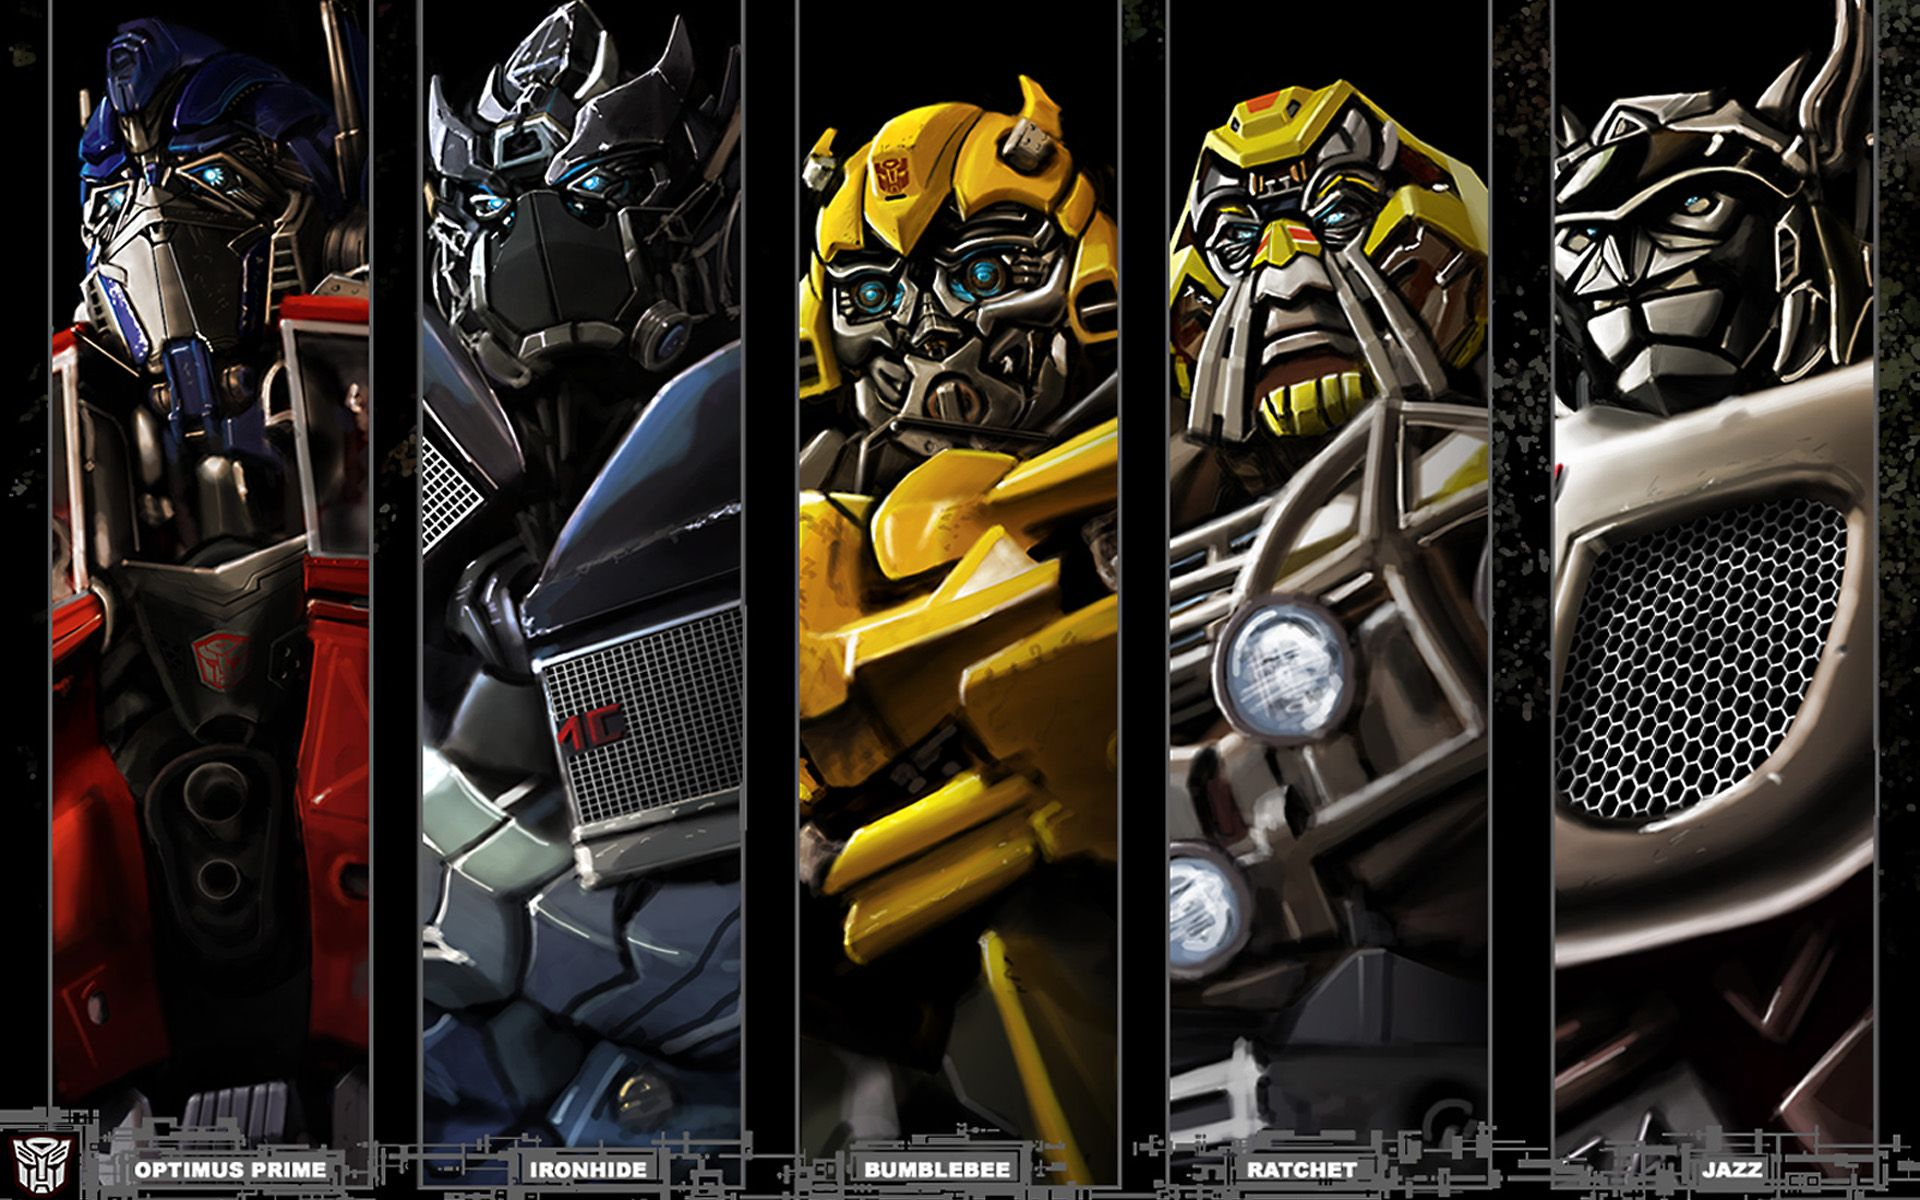 Cool Transformers Wallpapers | ... , wallpaper, trailer, freewallpapers, movie, transformer ...